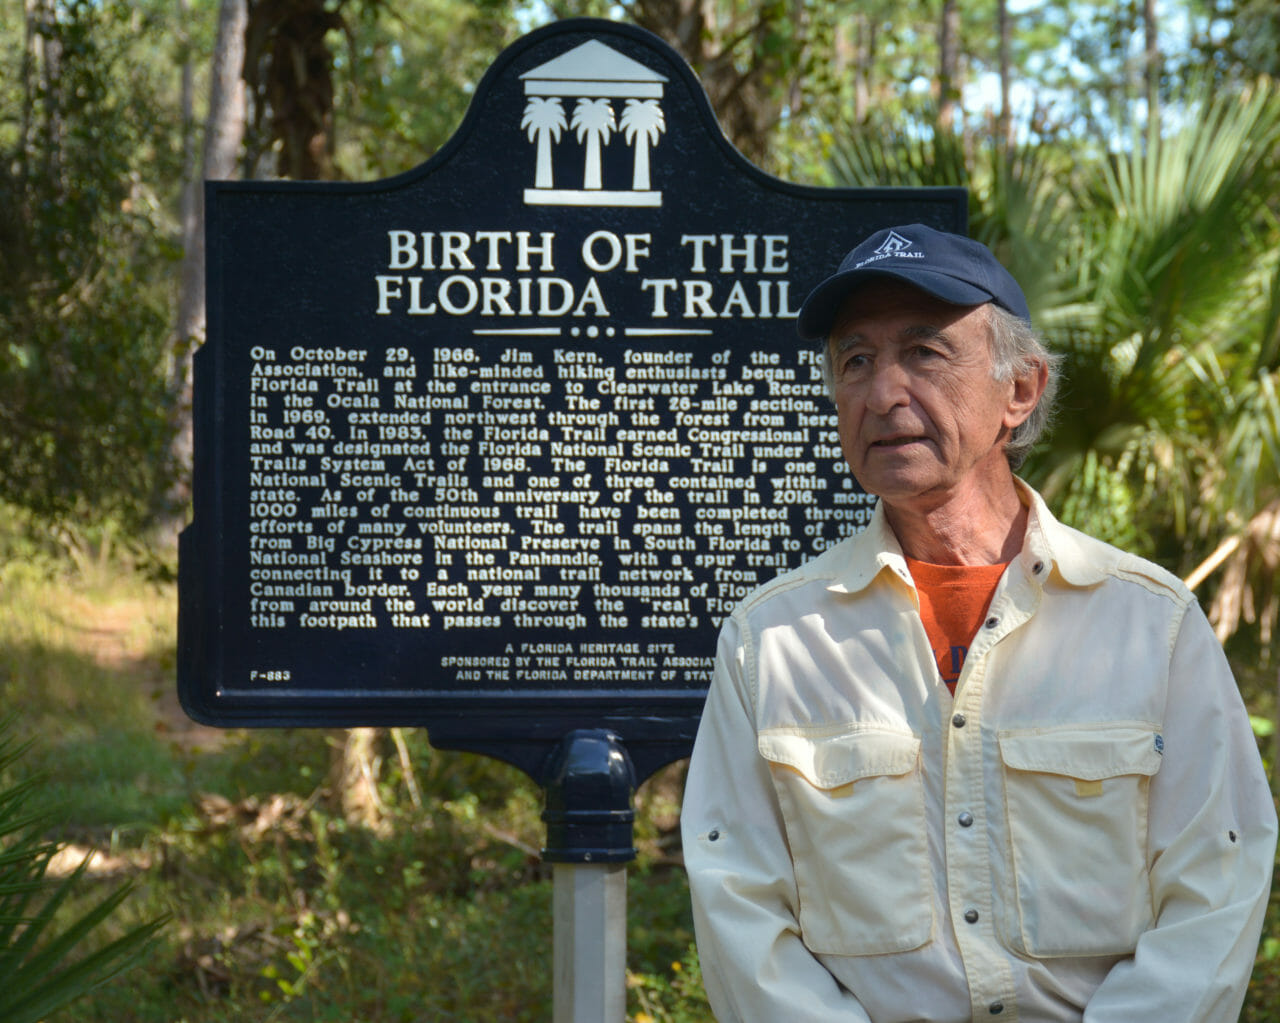 Jim Kern and historic marker